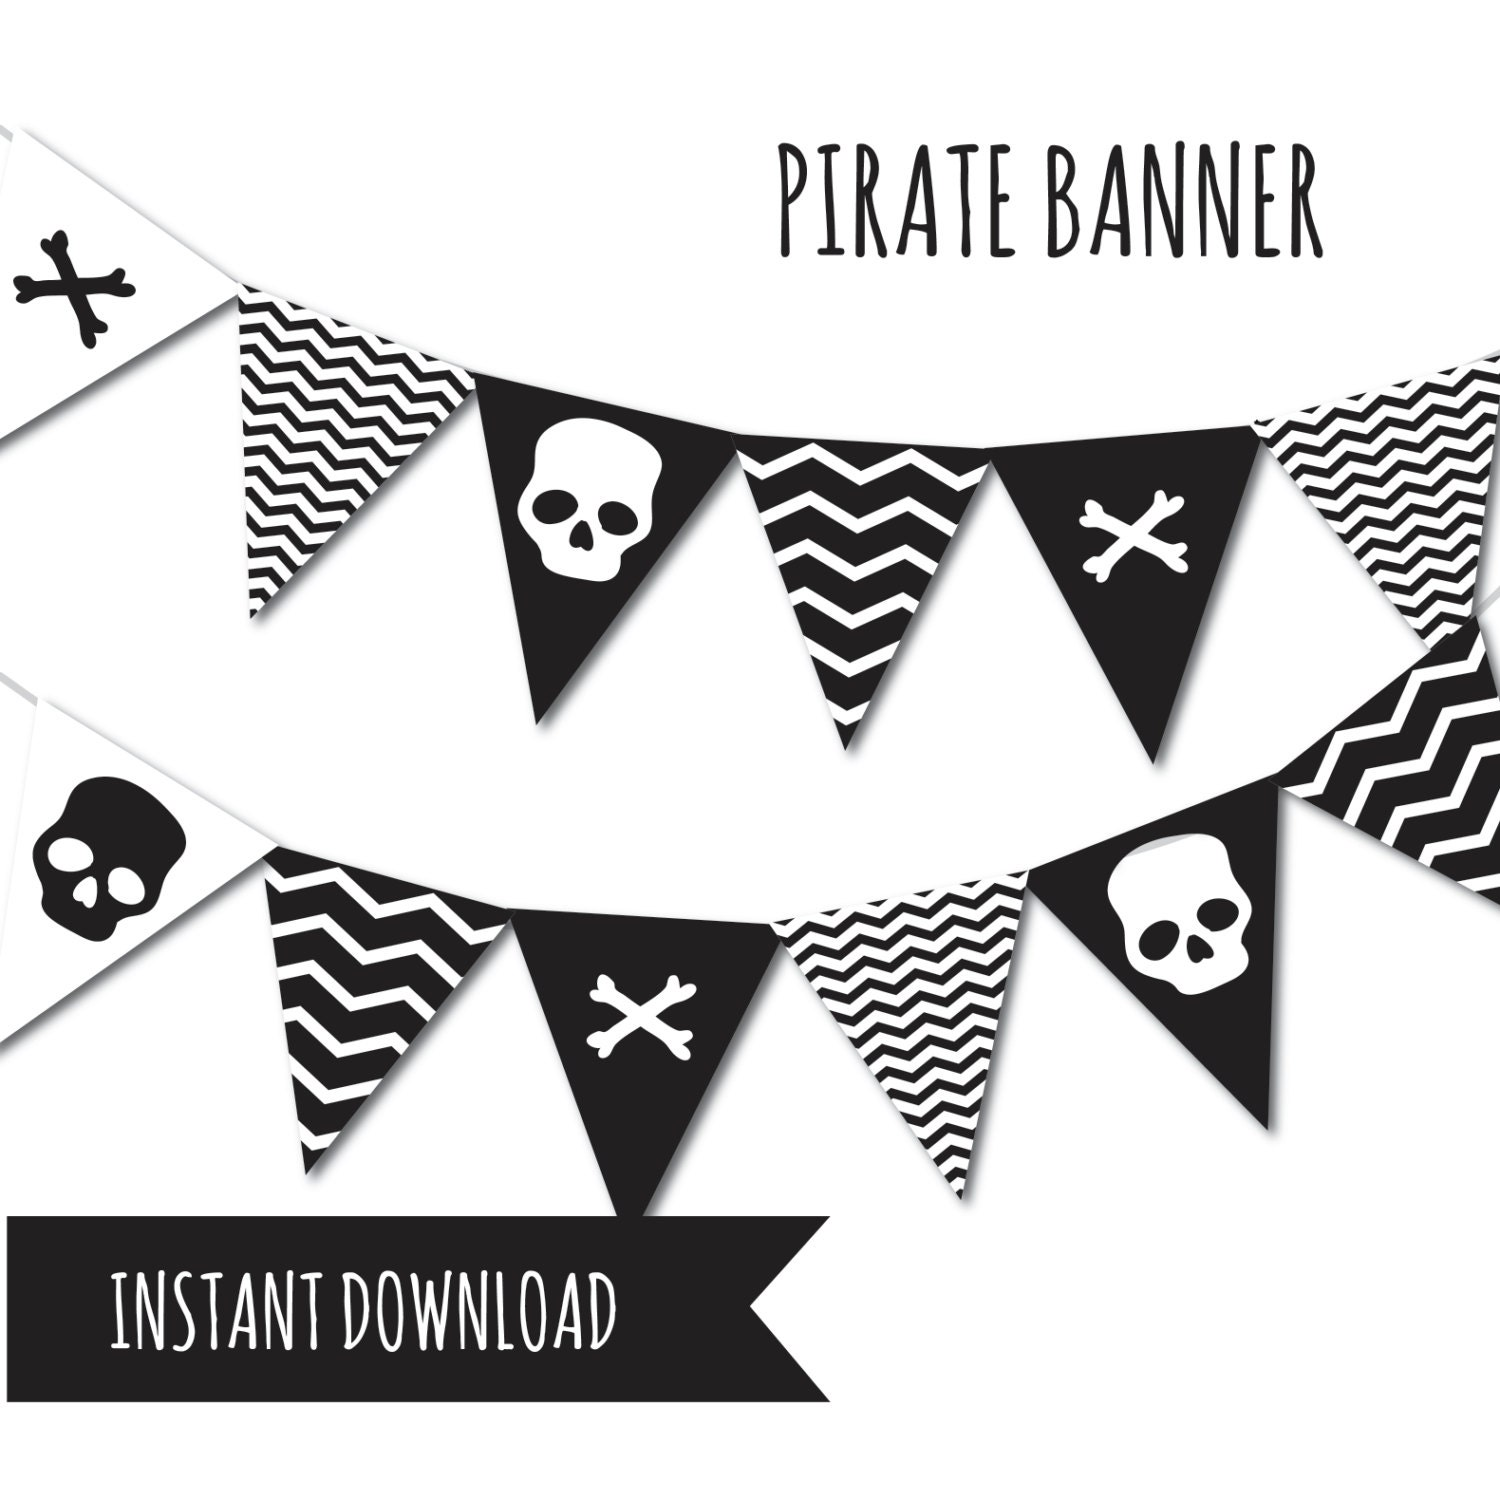 Pirate Banner Pirate Party Bunting Banner Printable Banner